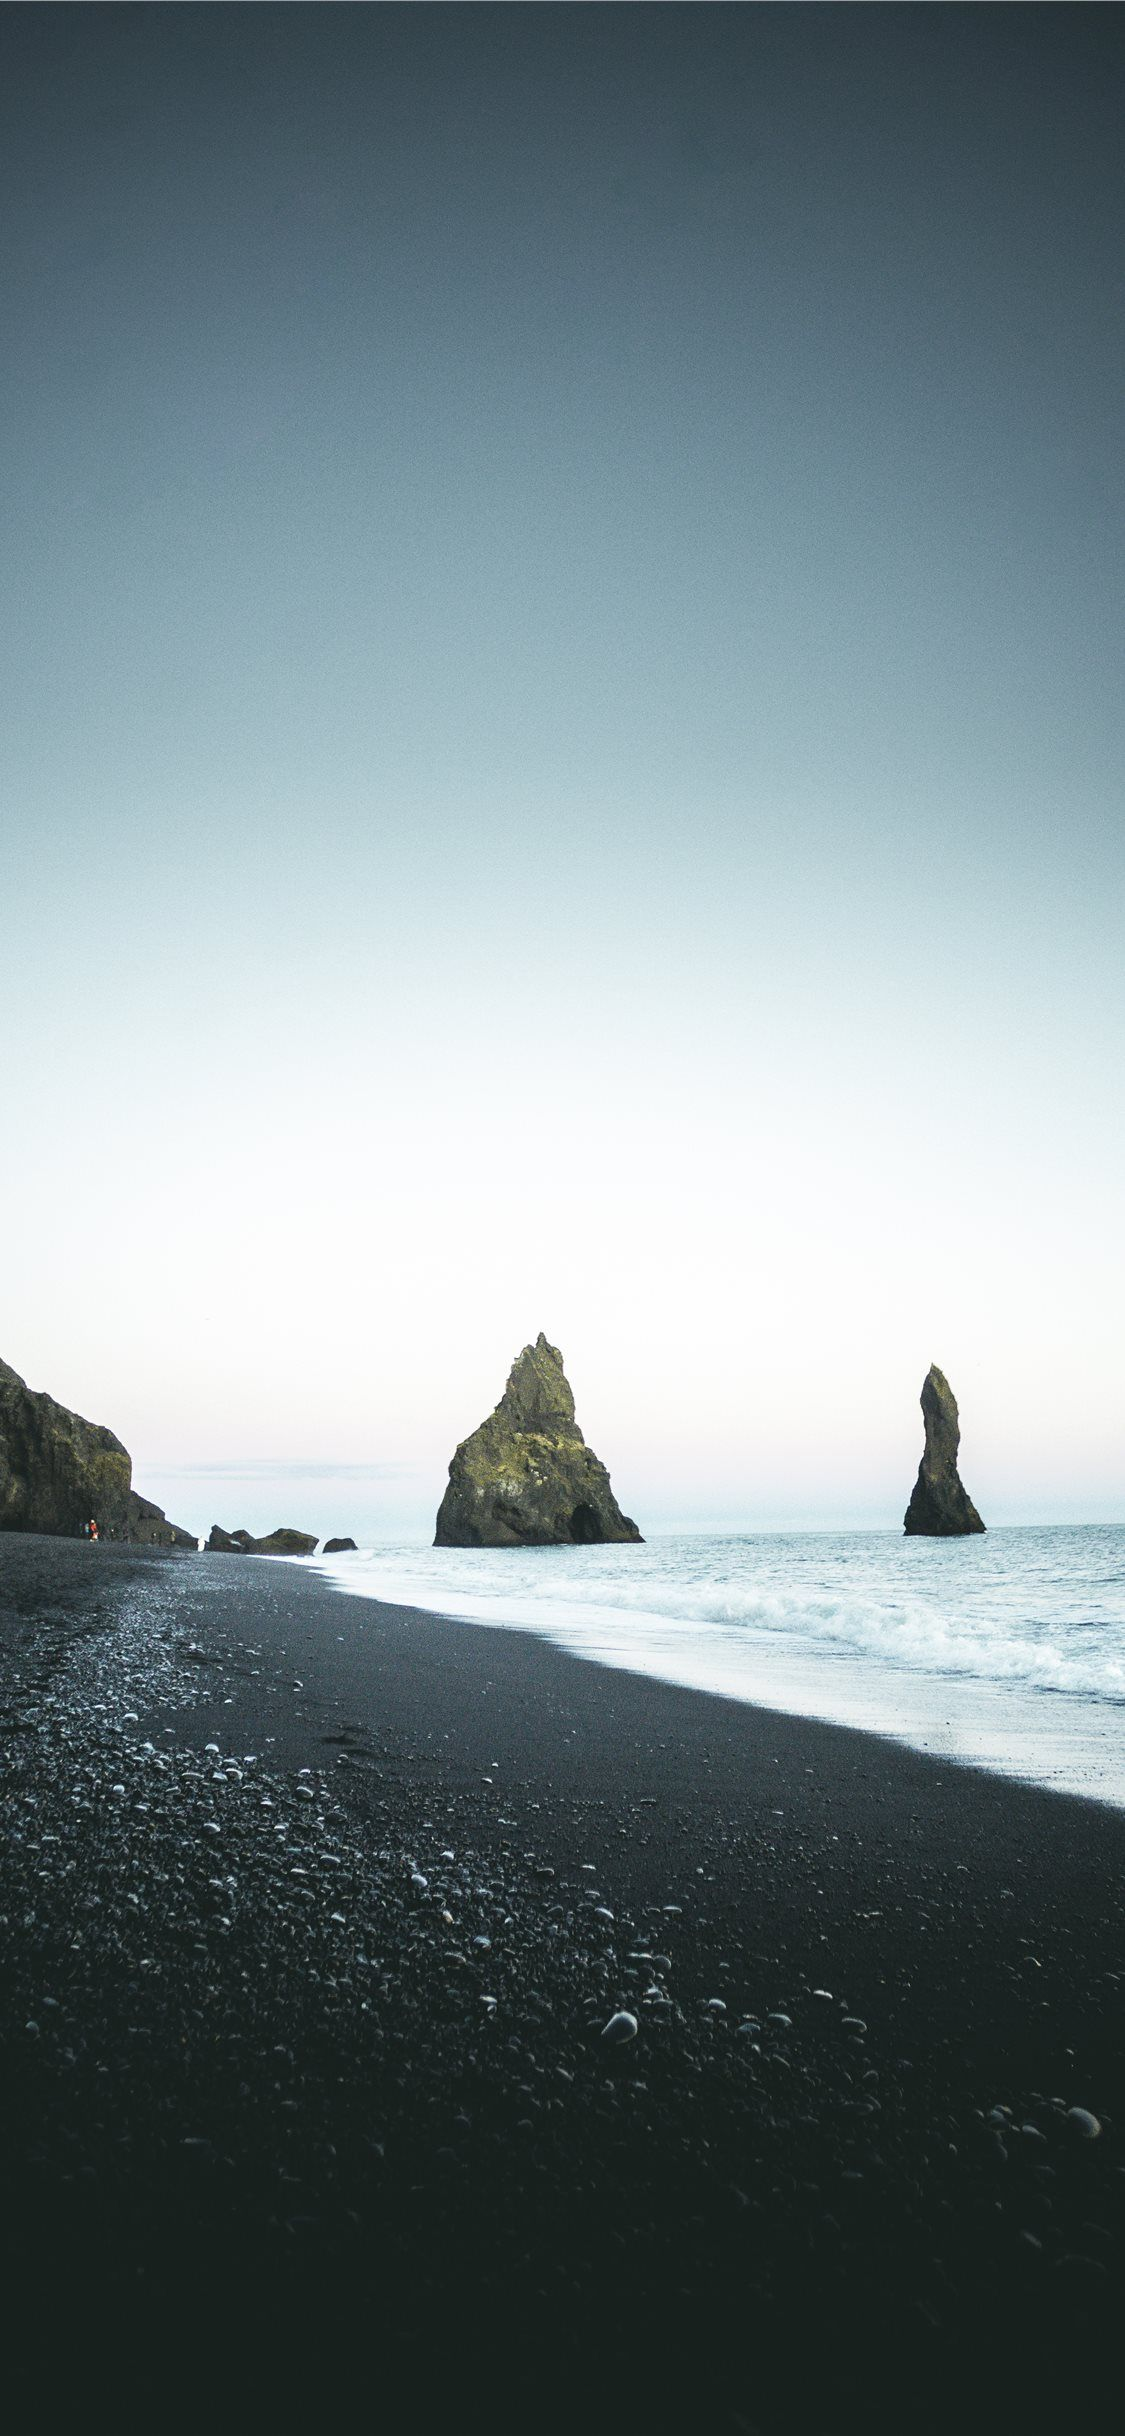 Vik Black Sand Shores, Vik, Iceland Iceland wallpaper